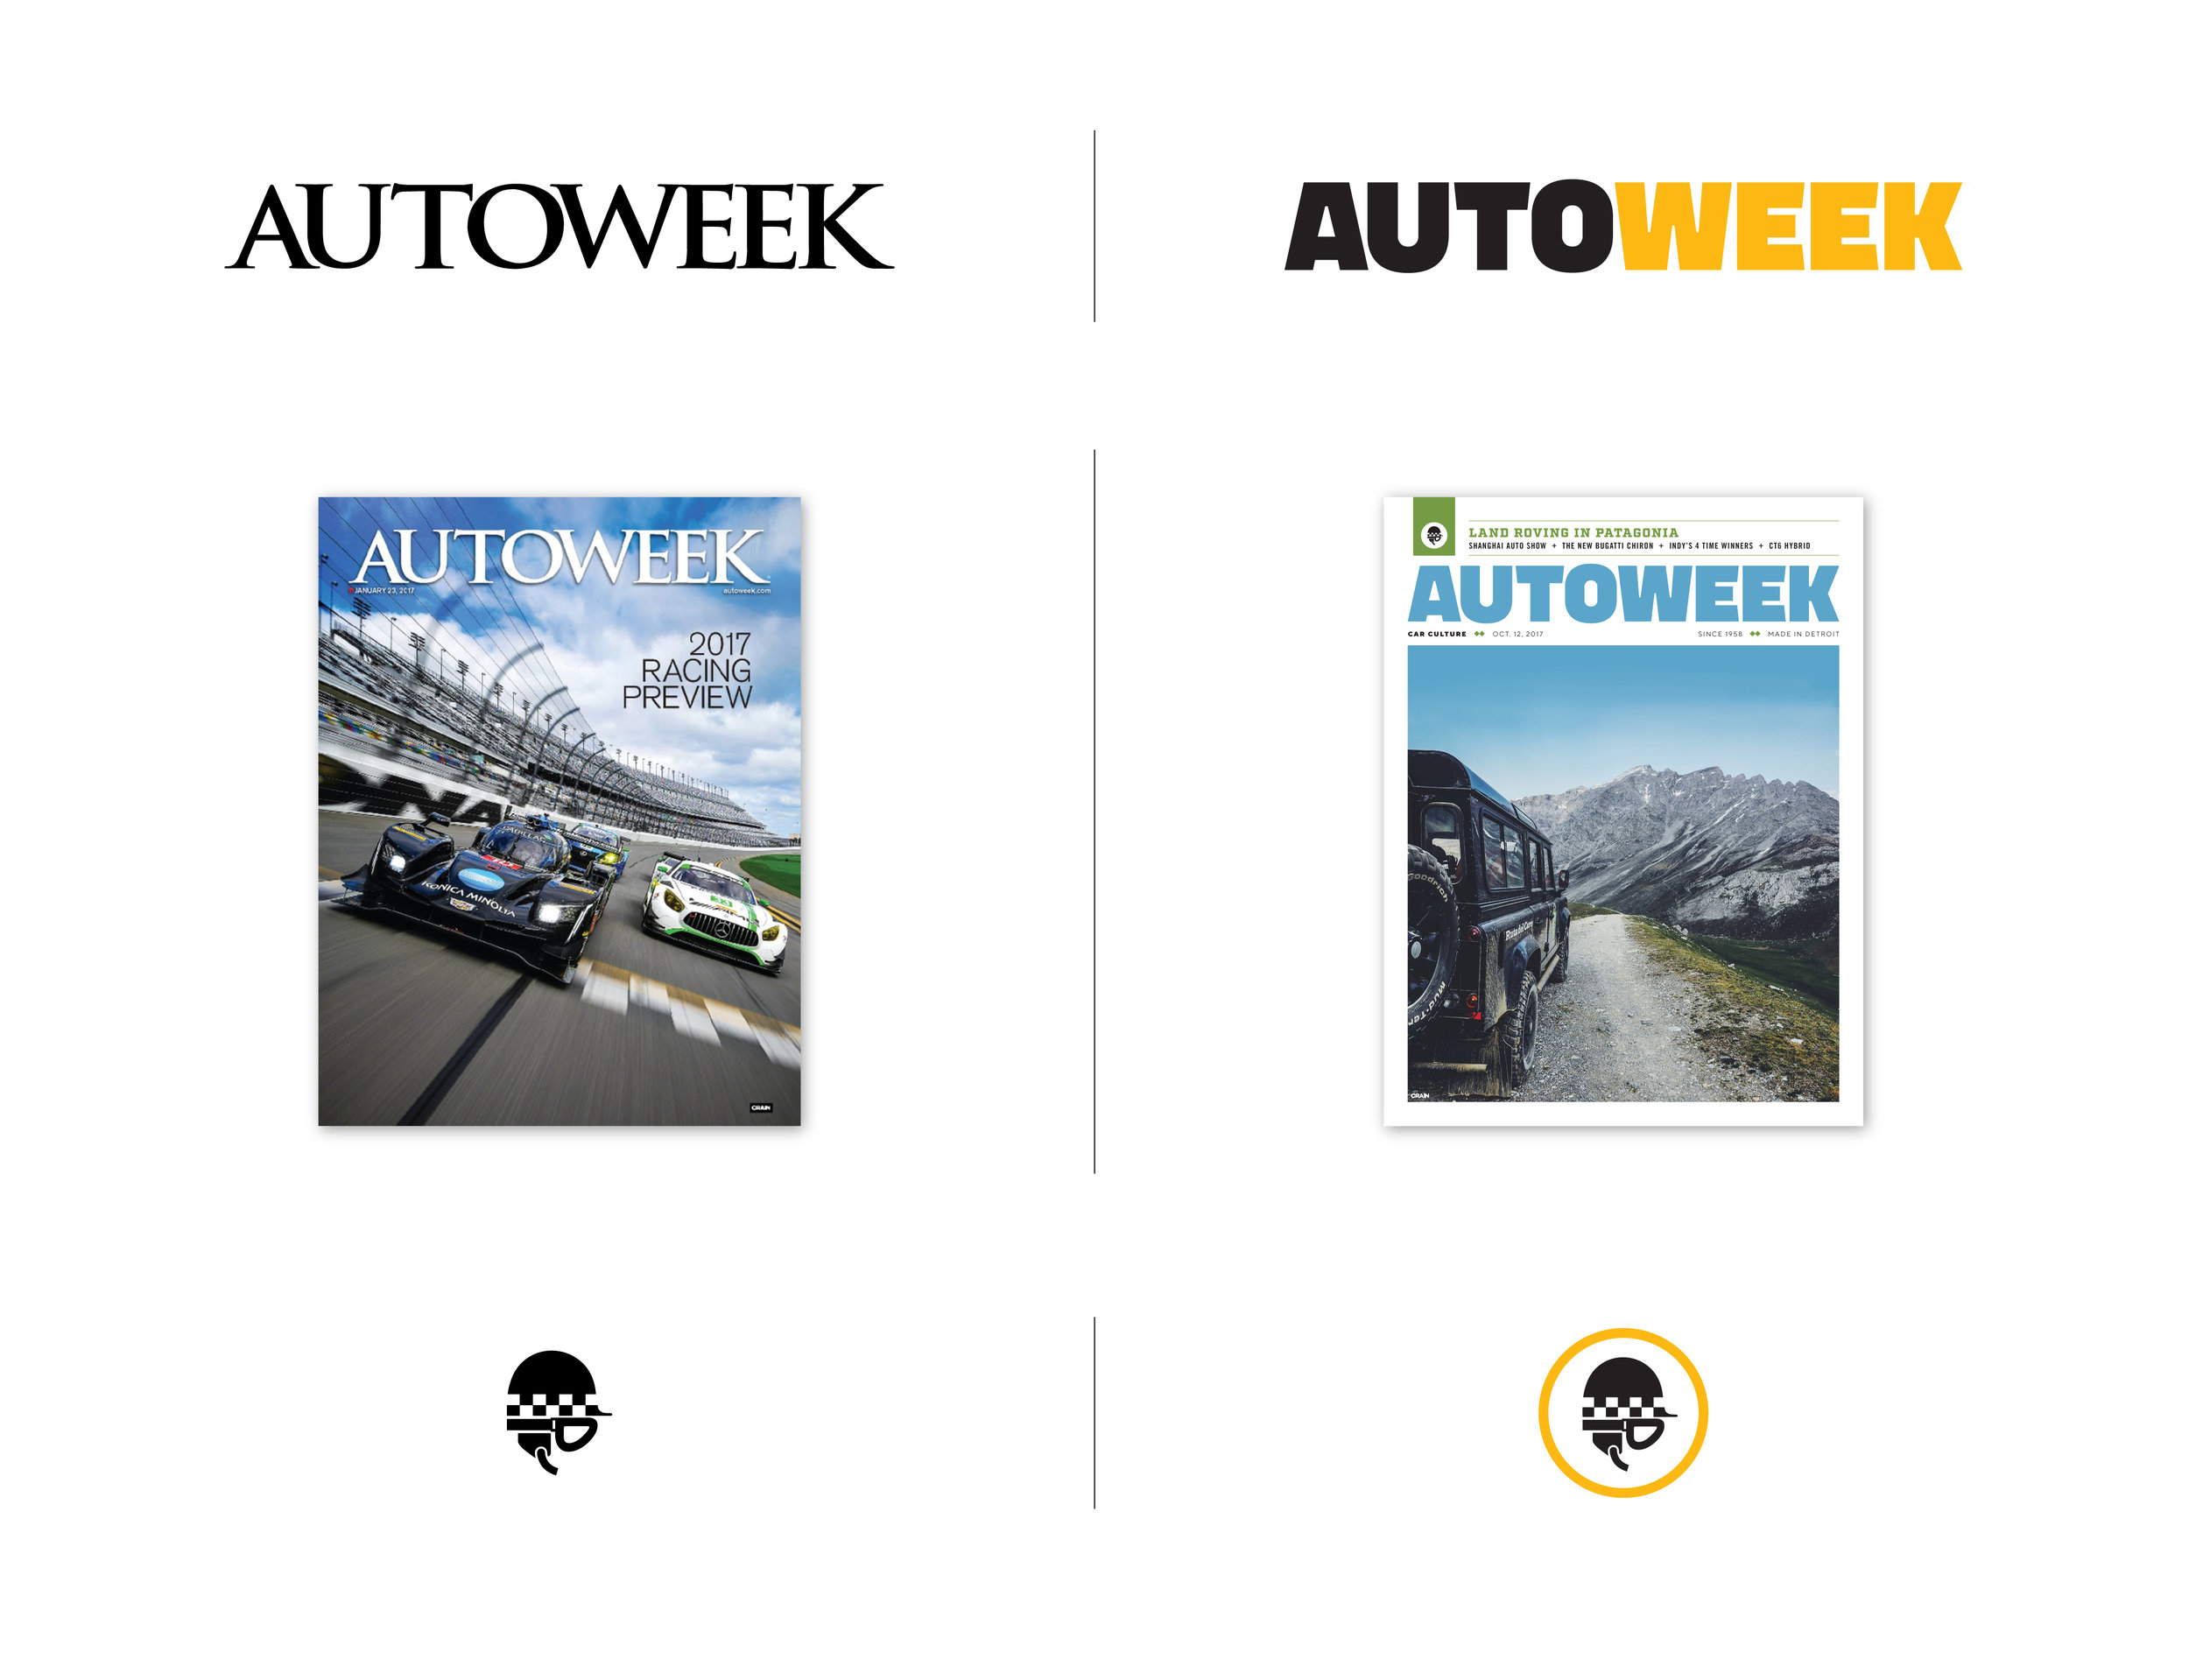 autoweek-before&after.jpg